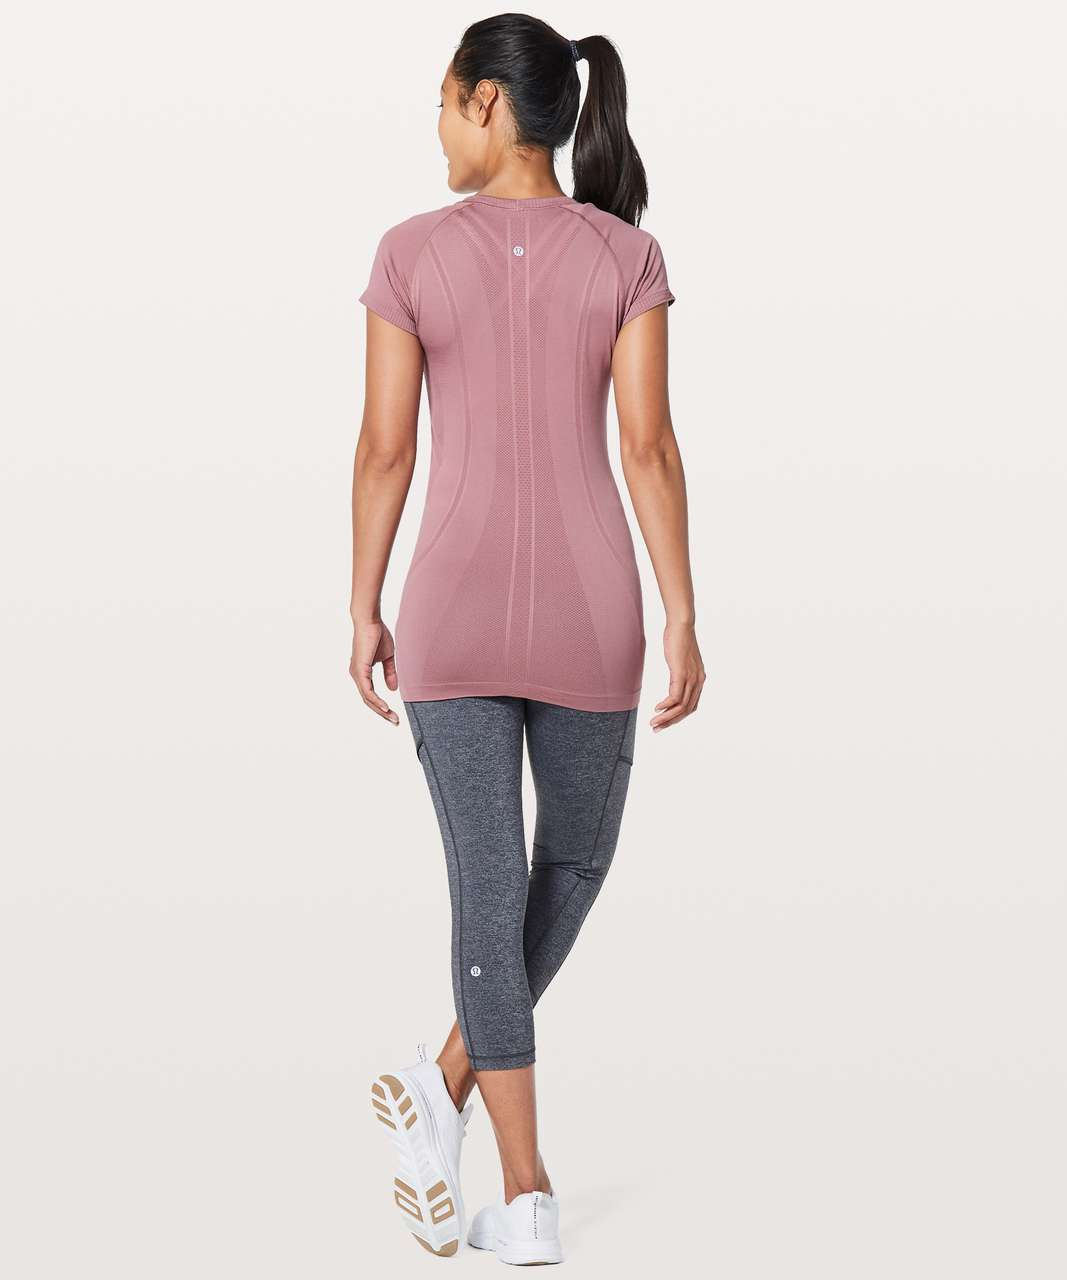 Lululemon Swiftly Tech Short Sleeve Crew - Figue / Figue